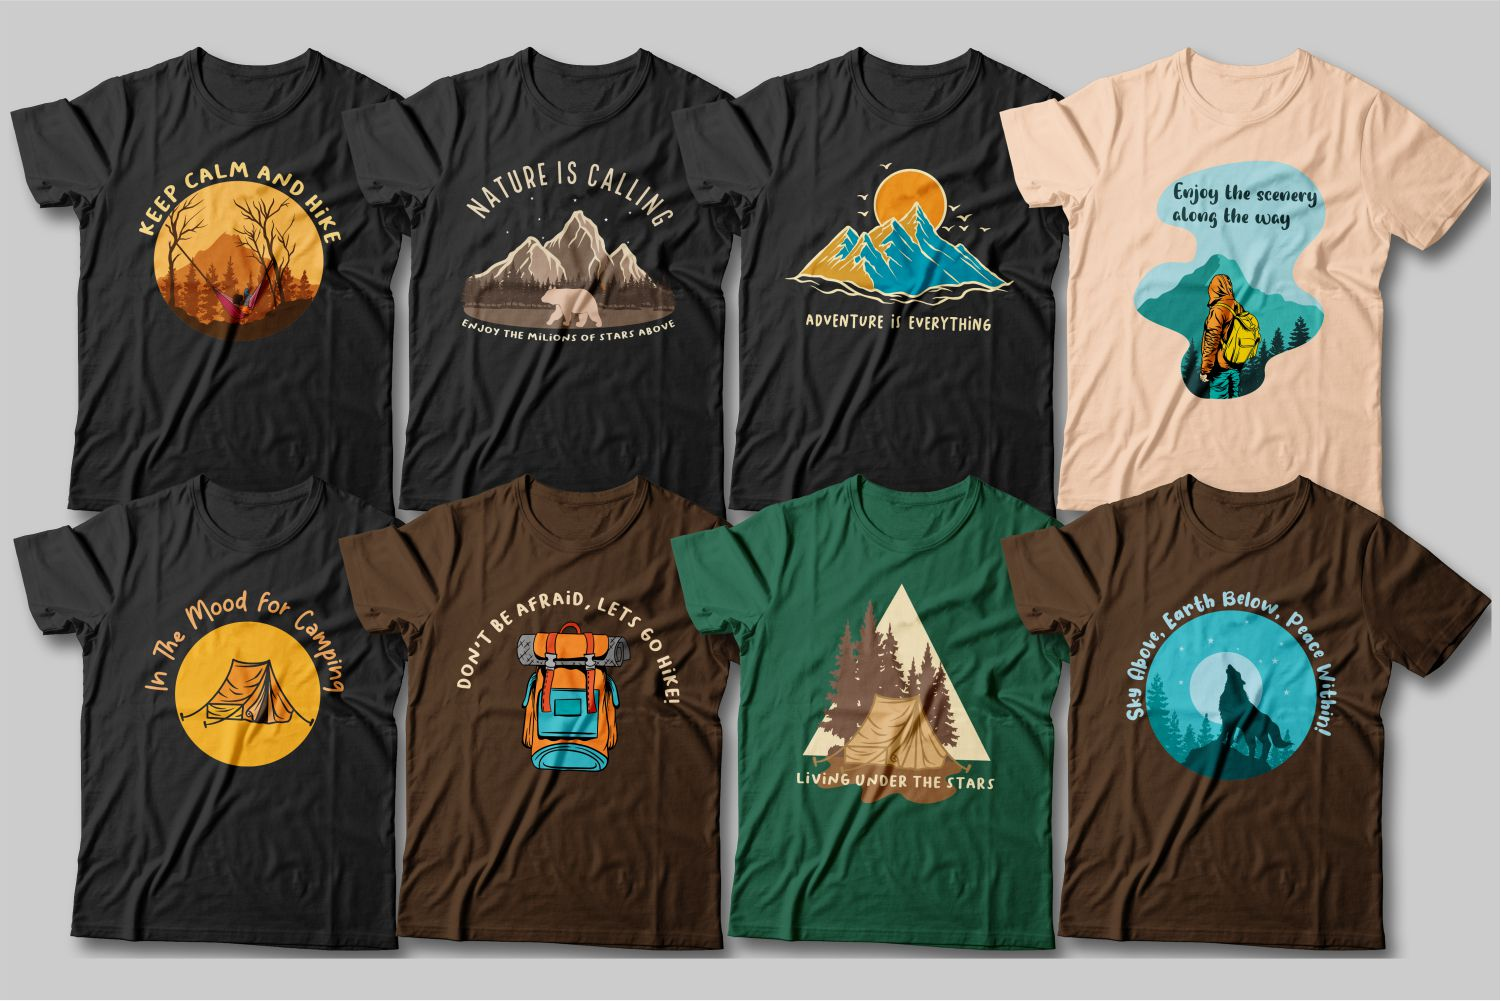 There are never too many mountains. These T-shirts are about freedom and choice. About love for nature.